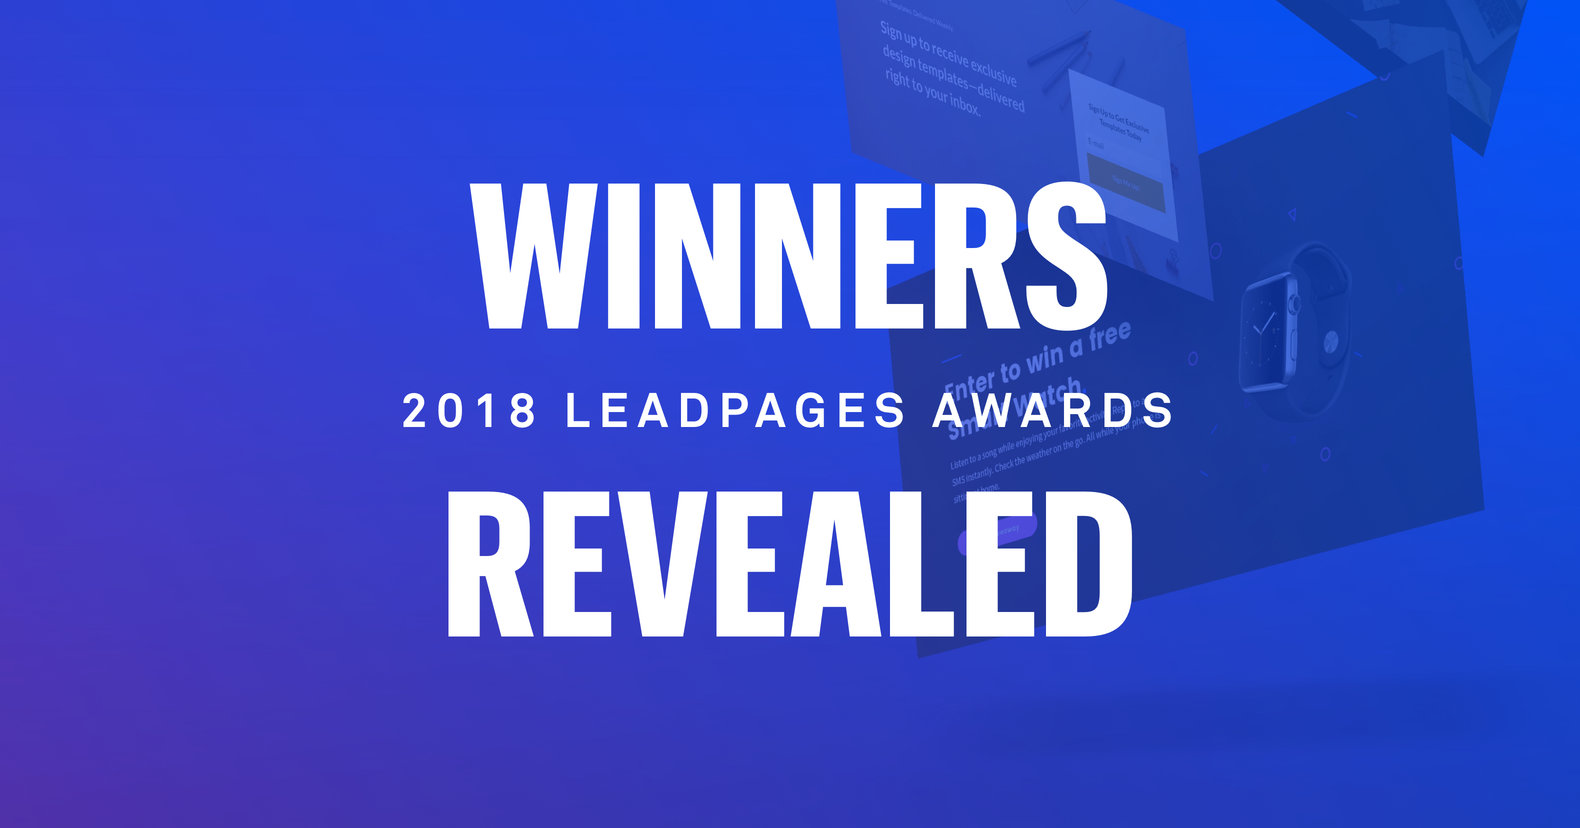 Winners Revealed: 2018 Leadpages Awards